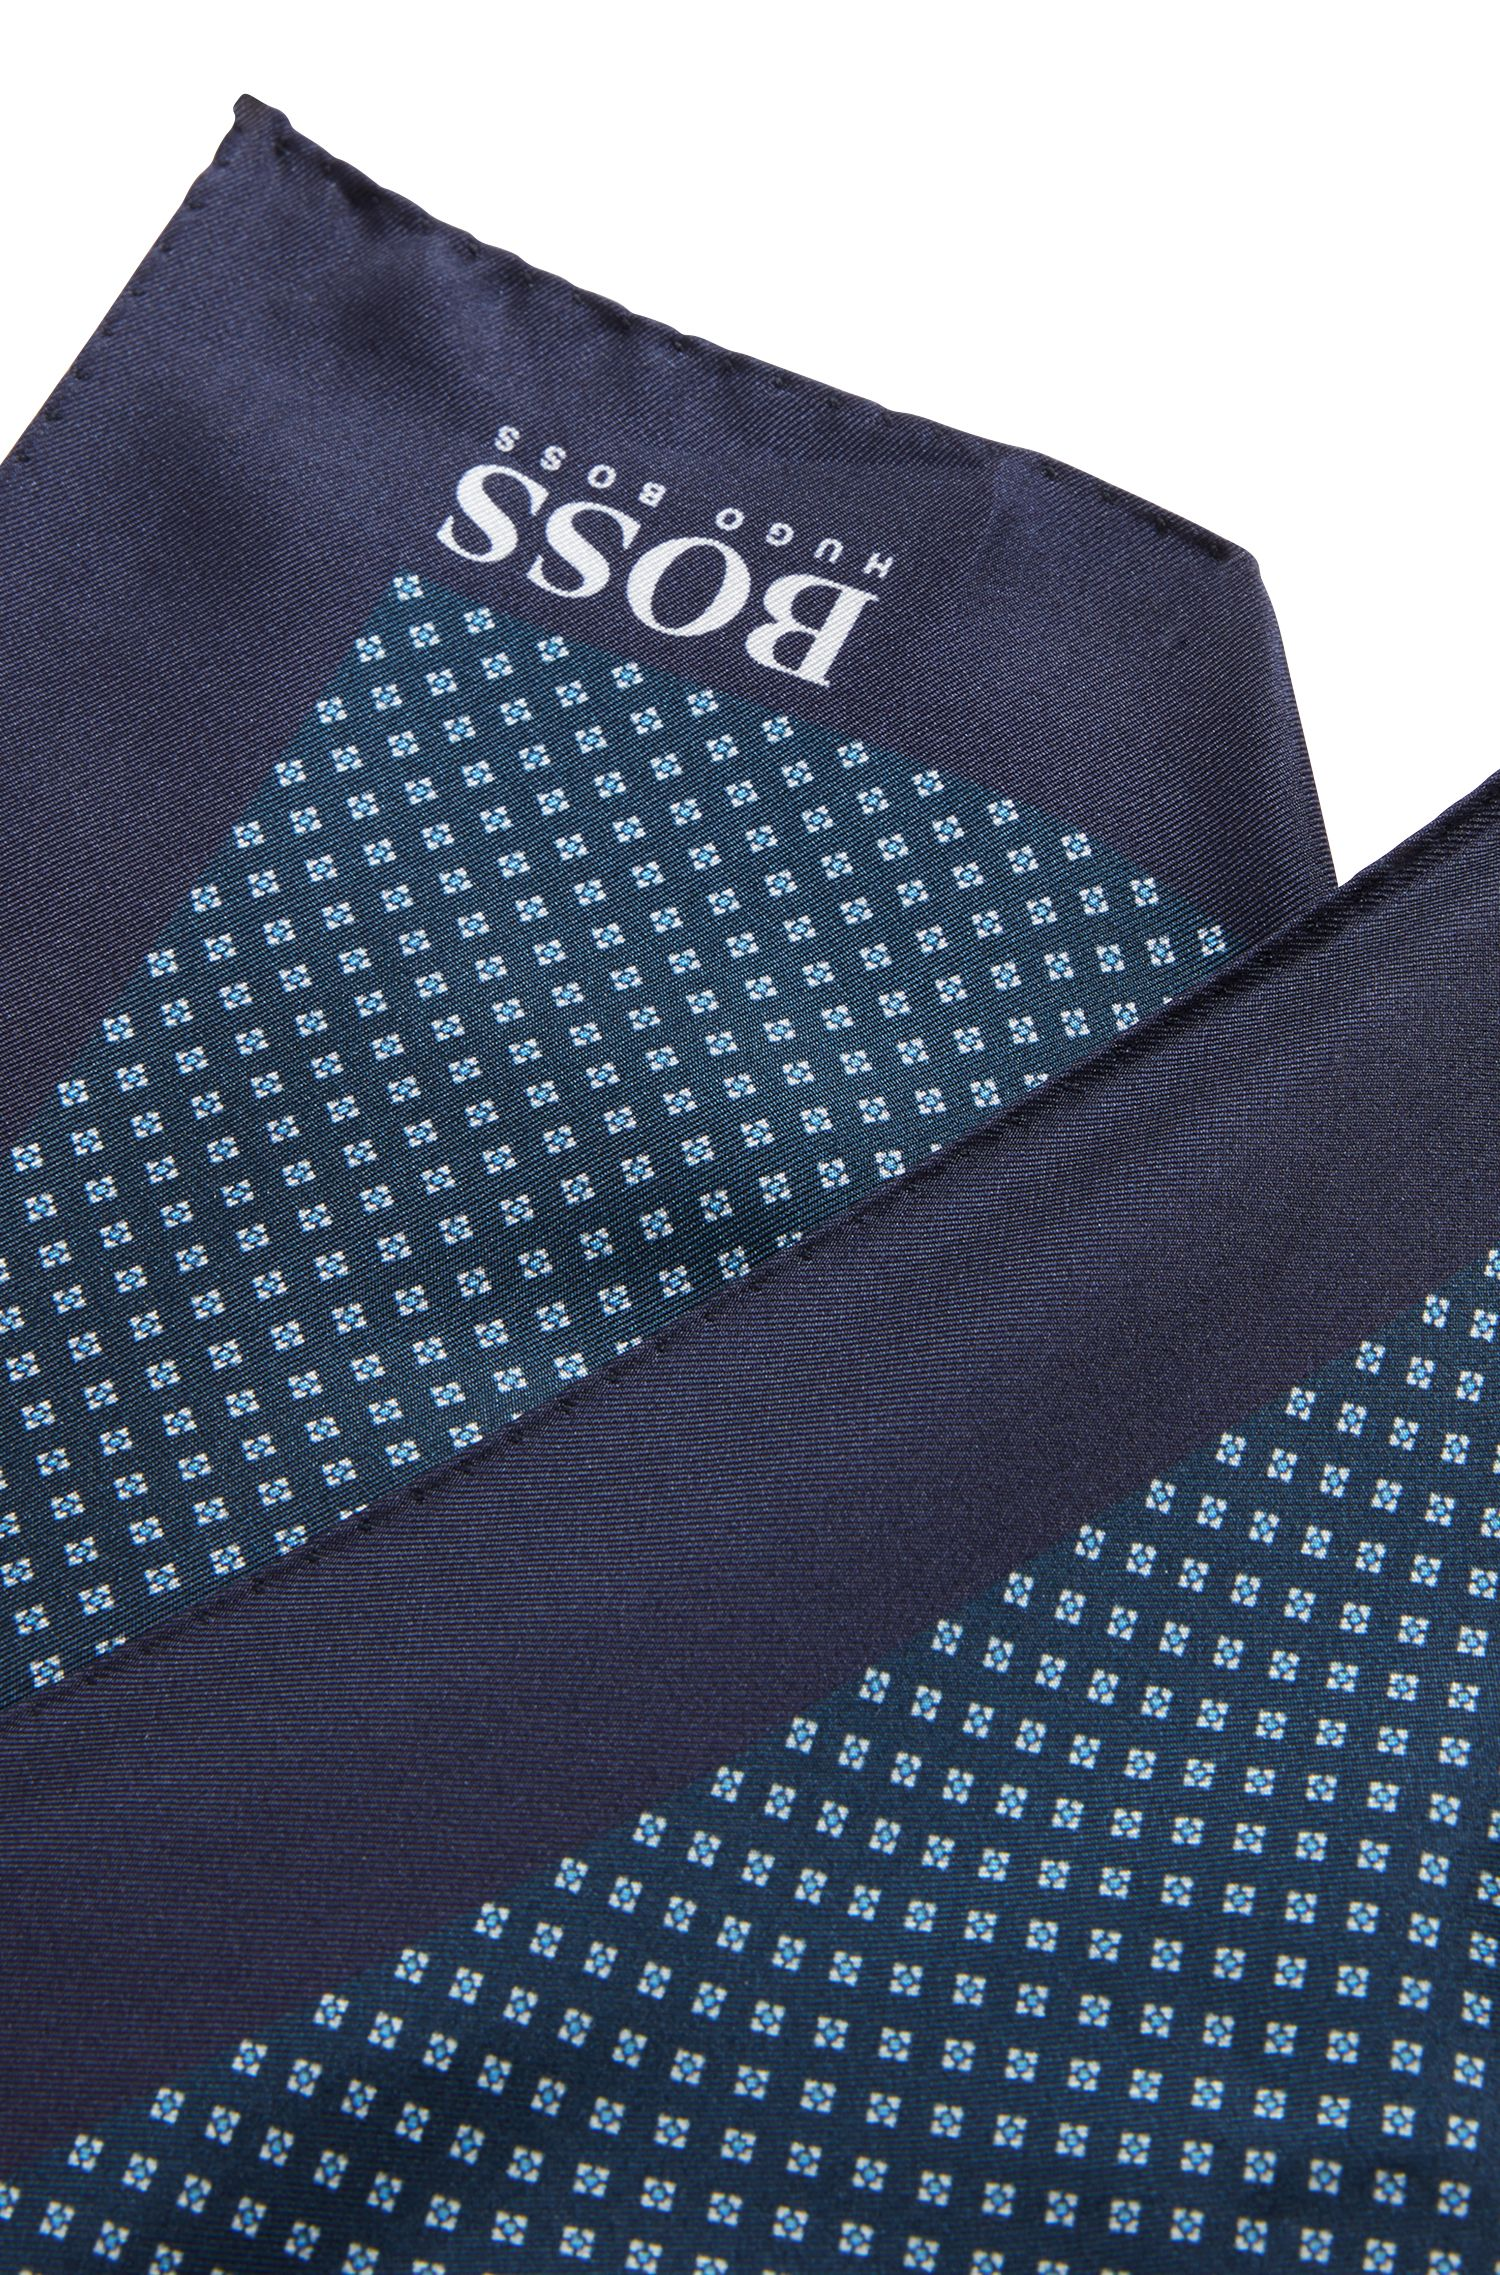 Patterned pocket square in silk, Patterned